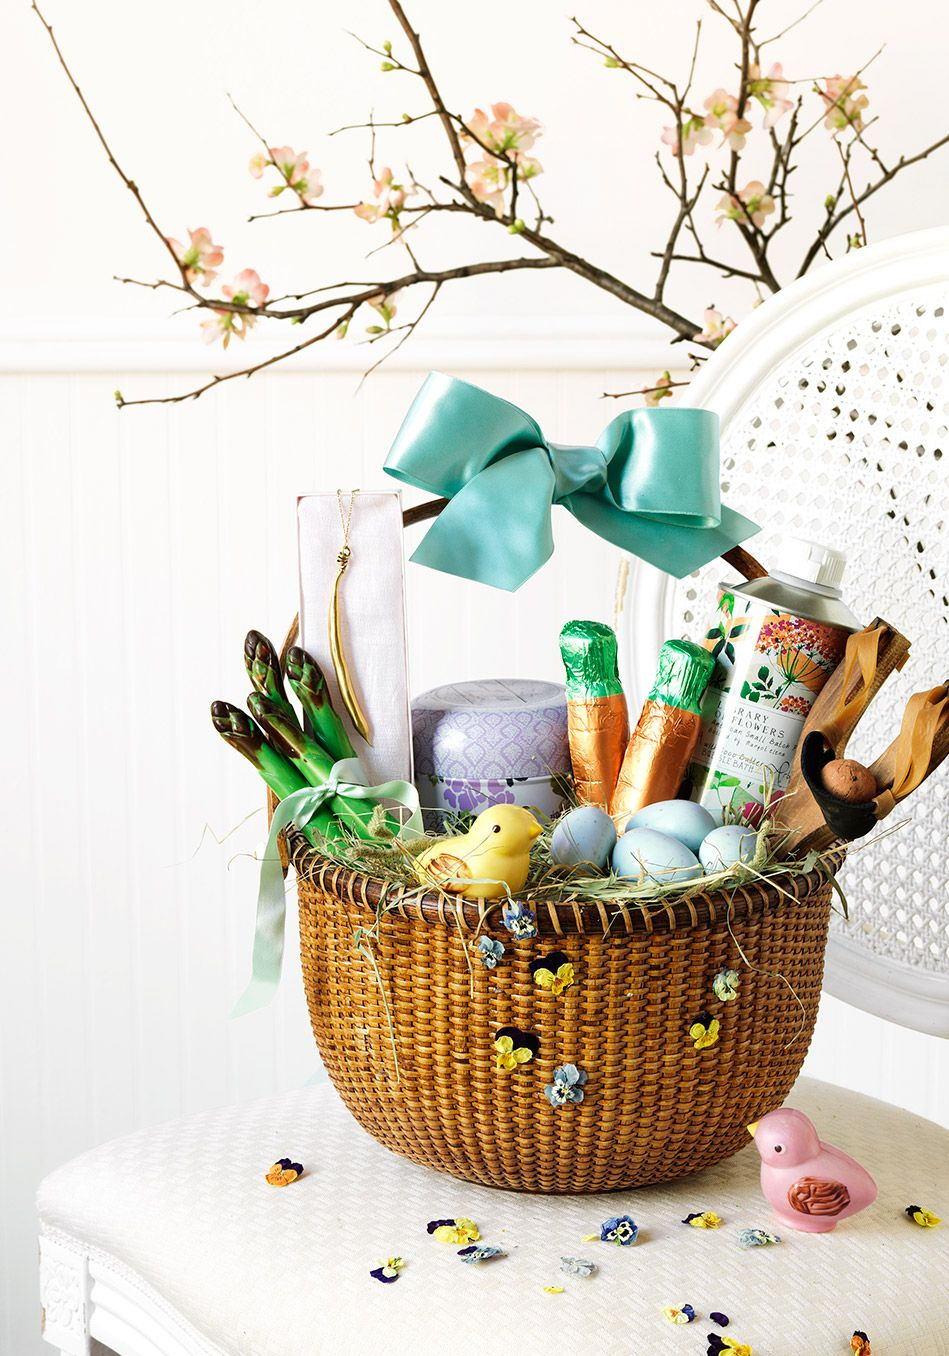 A Grown Up Easter Basket For The Young At Heart Adult In 2020